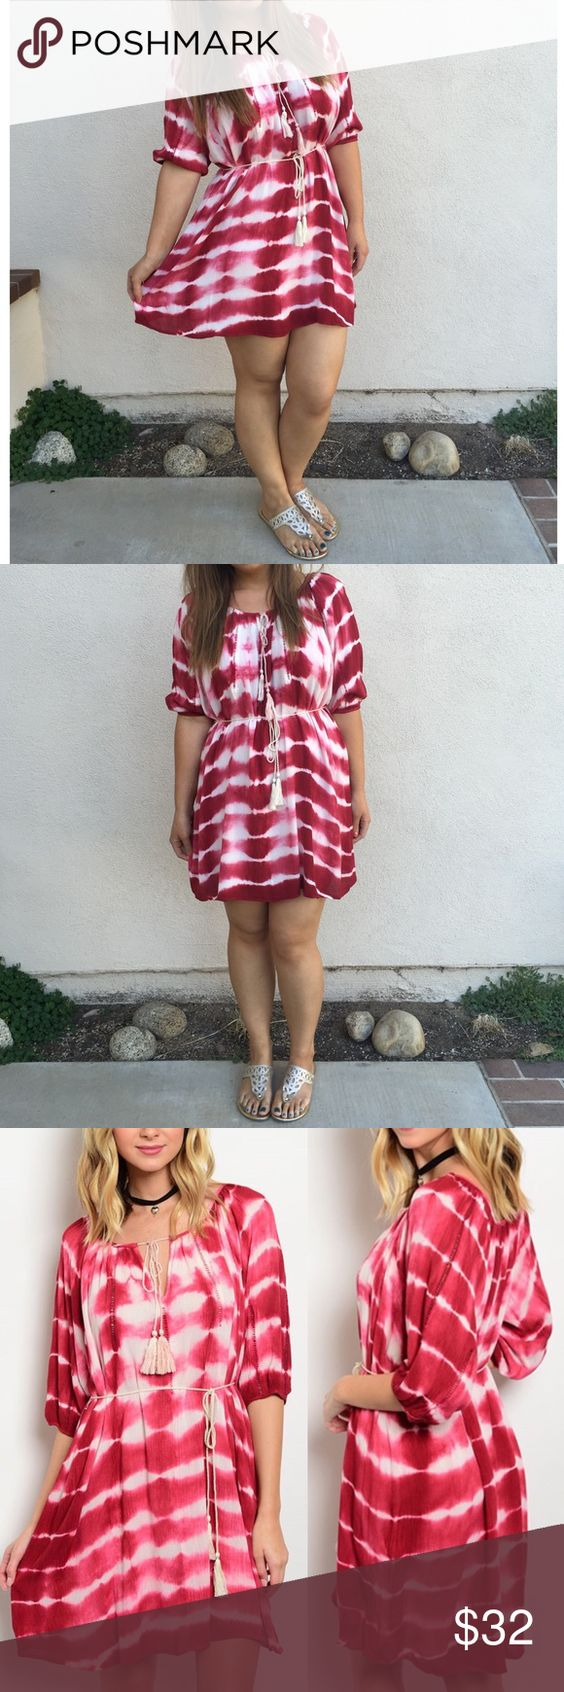 Wine Tie Dye Tassel Dress Gorgeous comfy tie dye dress with tassel edged wrap around tie, and neckline drawstring tie. Feel beautiful and comfortable at the same time💕  [BUNDLE] for 15% off!  ❌No trades, PayPal, Holds 📷Instagram: @lovelionessie Dresses